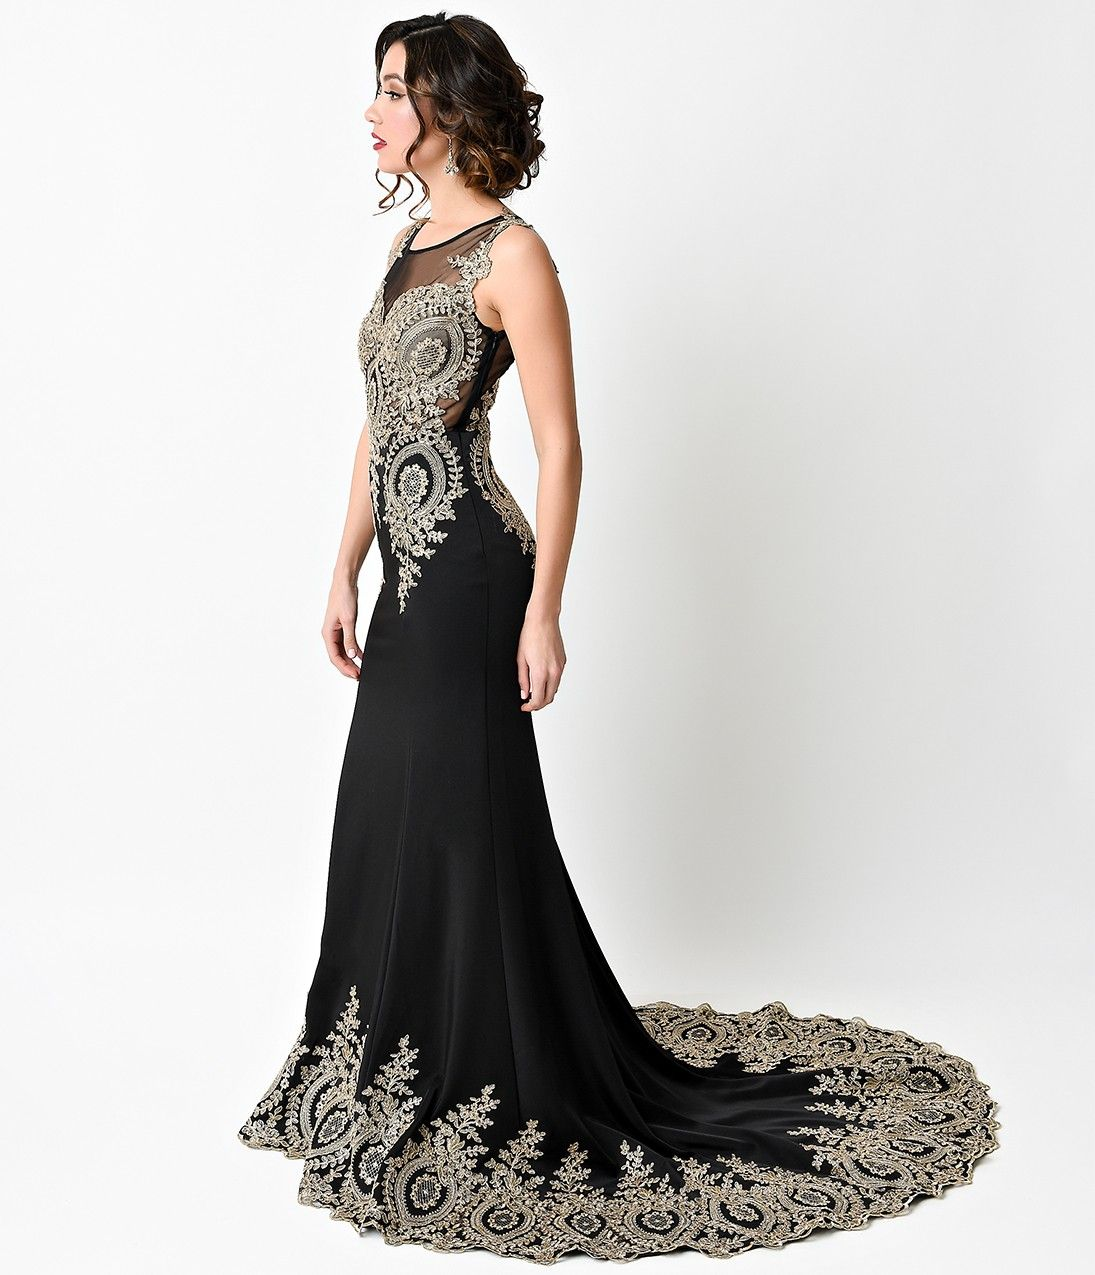 S style black u gold filigree bias cut satin gown clothes